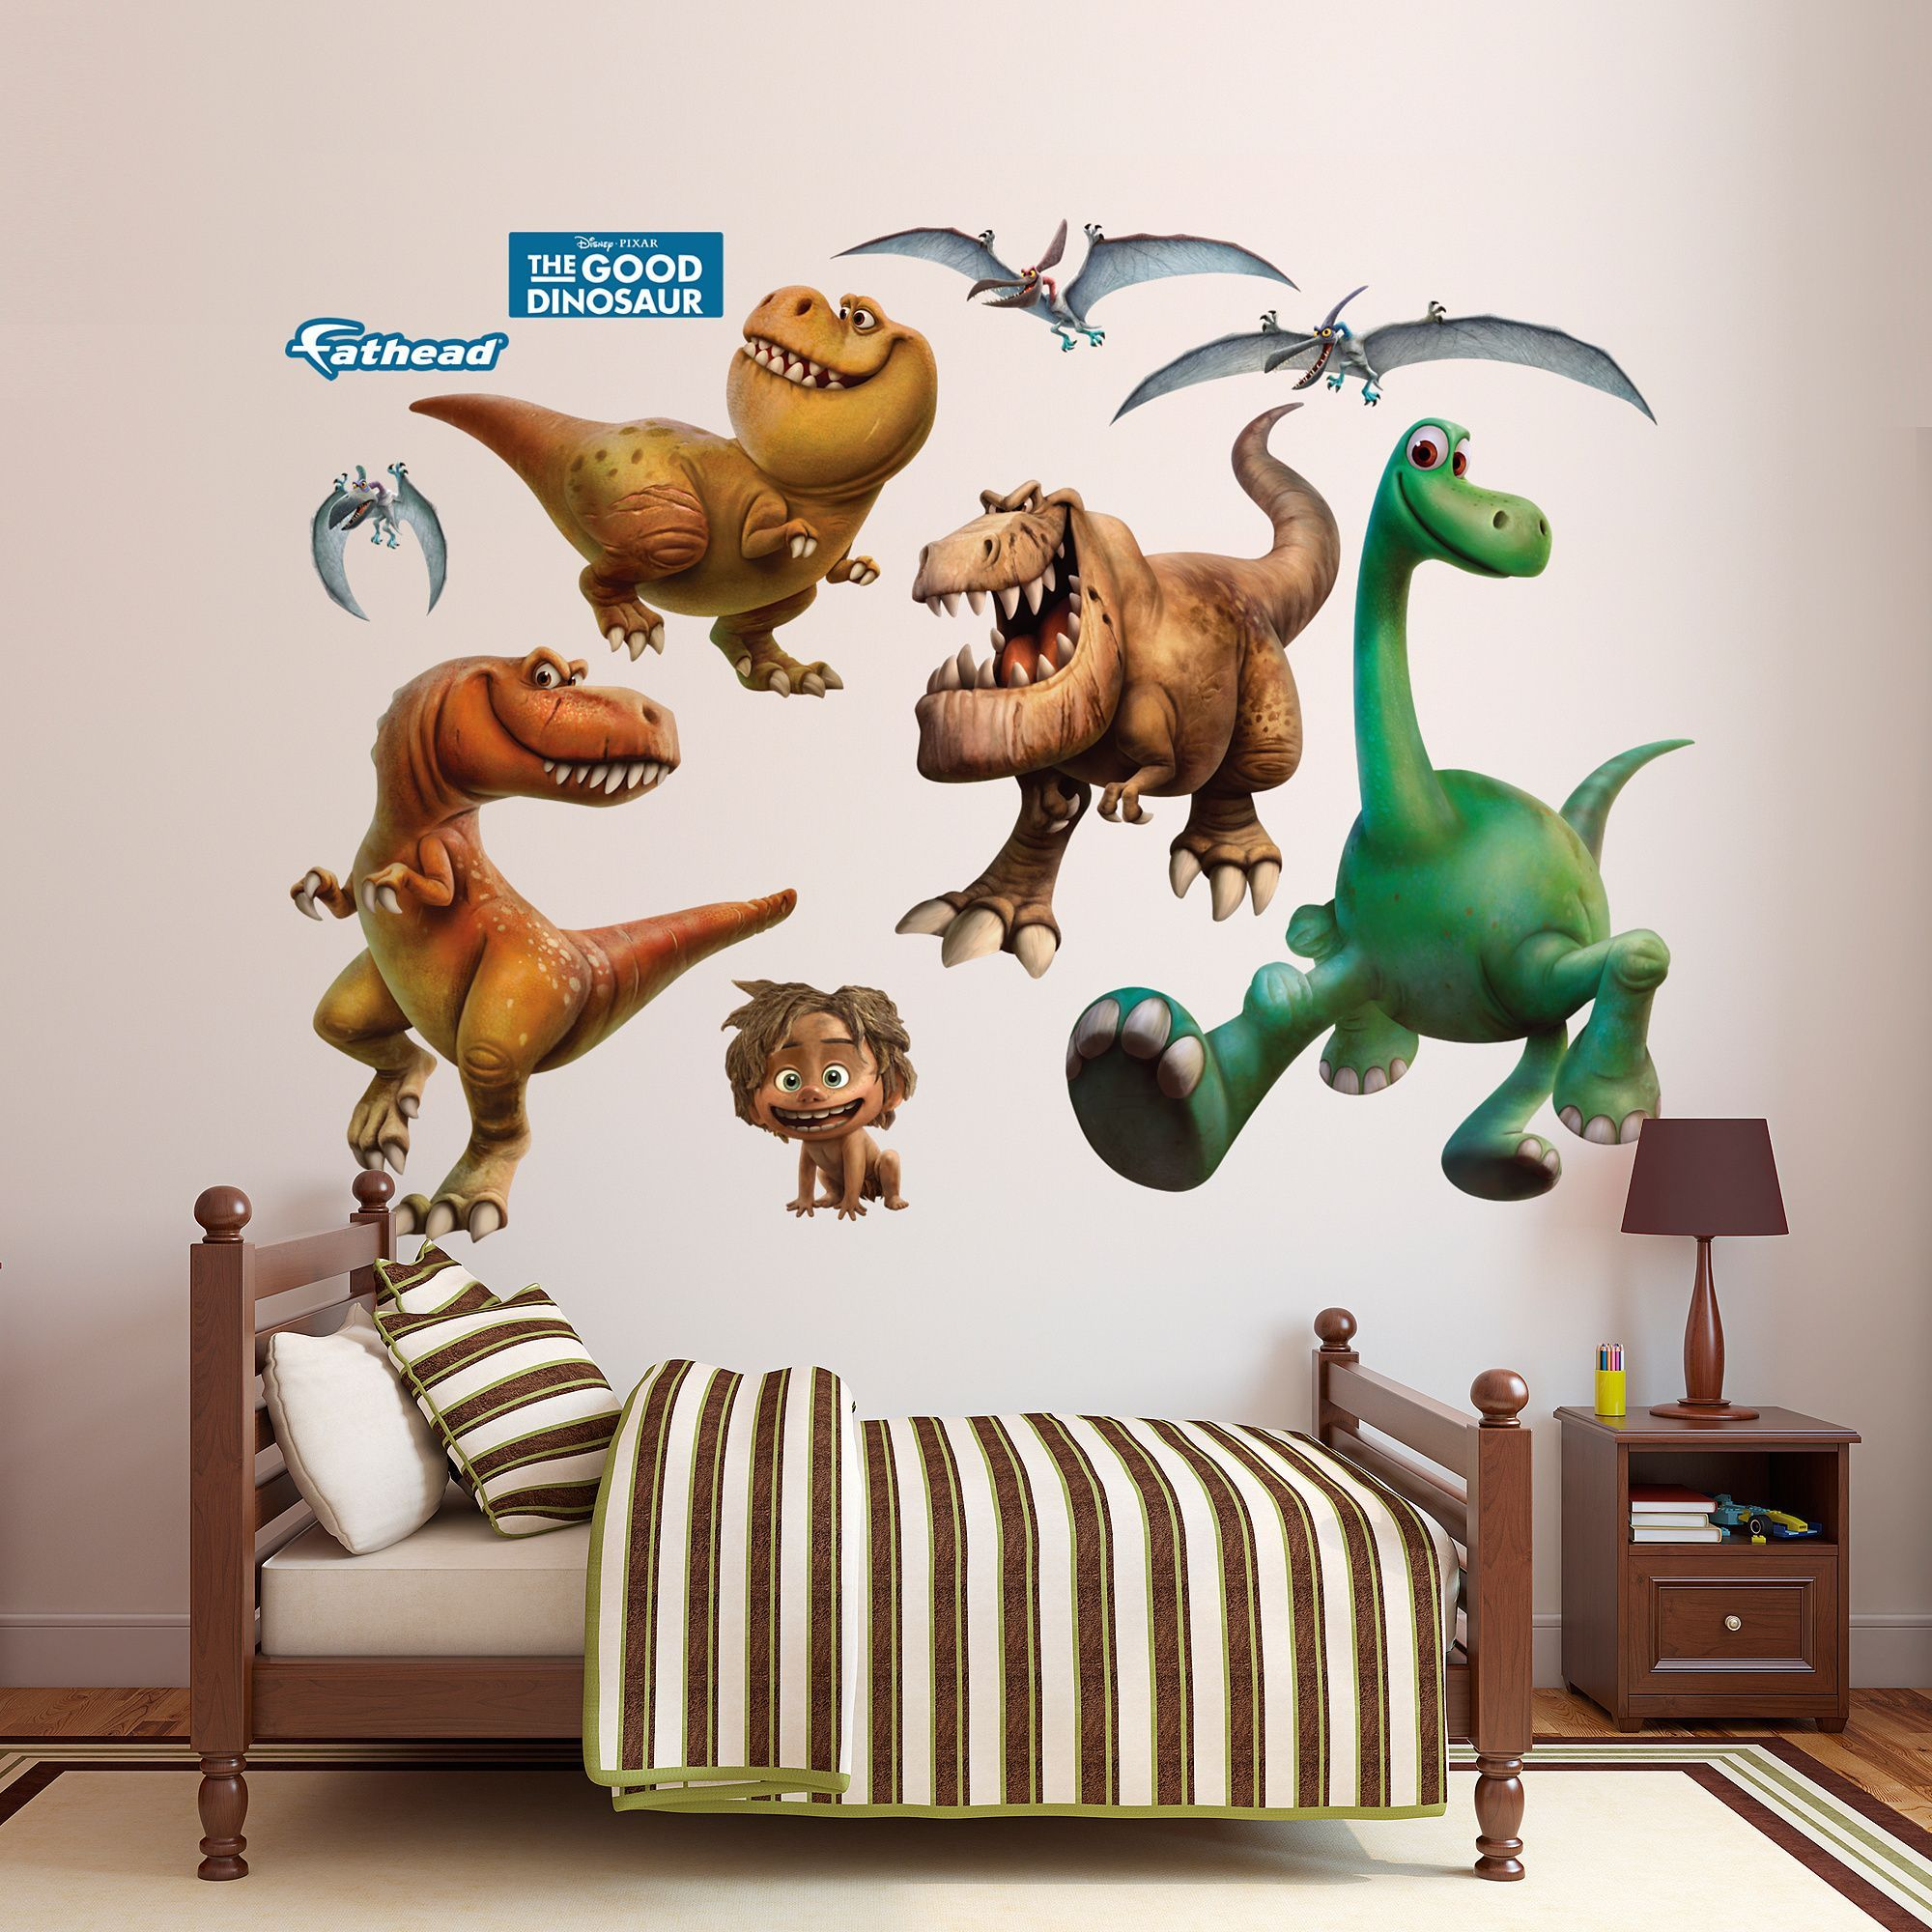 Bedroom wallpaper feature photo wall mural in Large size Disney Good Dinosaur